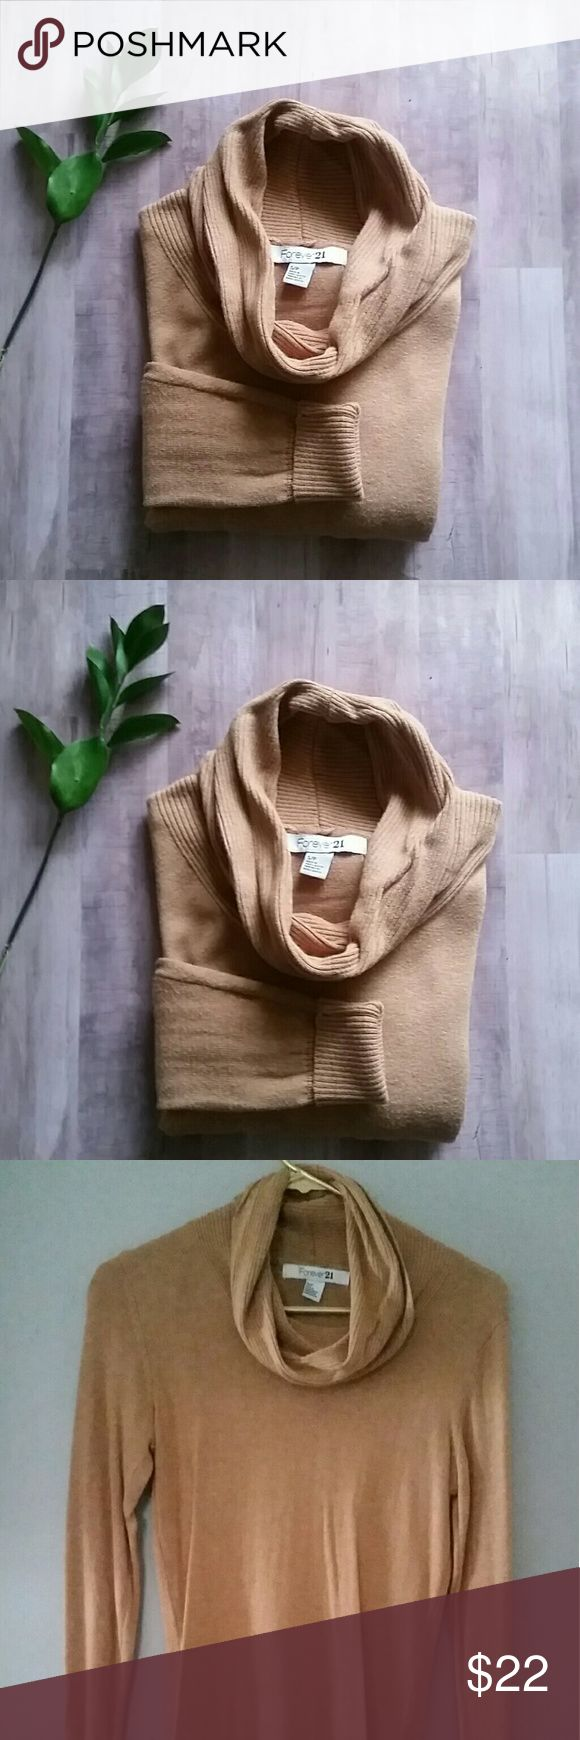 Forever 21 cowl neck sweater Tan cowl neck sweater Forever 21 Sweaters Cowl & Turtlenecks